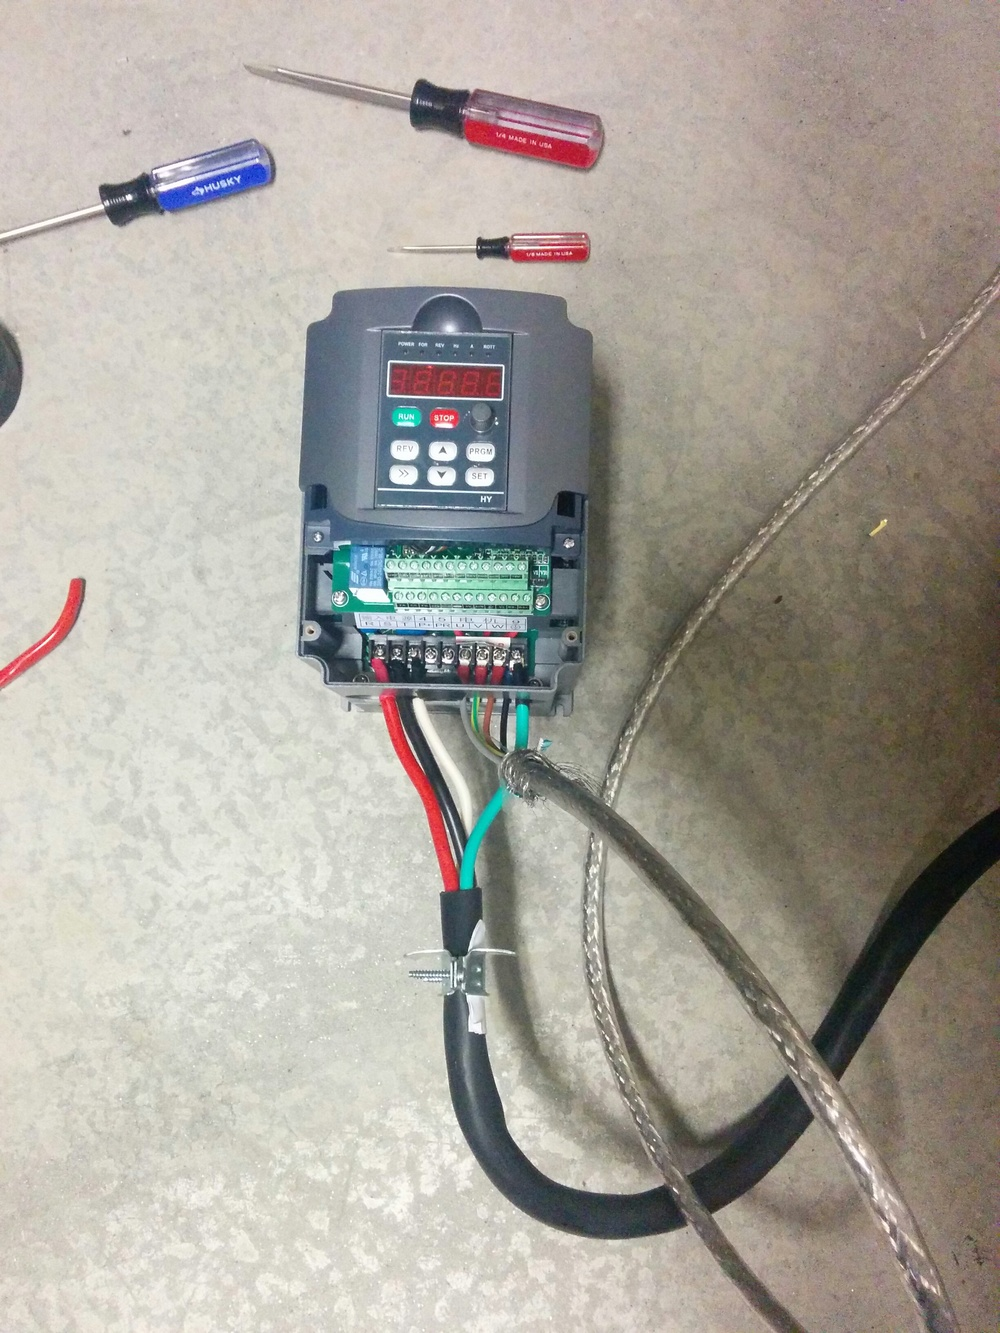 Setting Up A Huanyang Vfd For Cnc Router Spindle The Half Baked Wiring 110v Plug Shield Has Not Yet Been Hooked To Ground